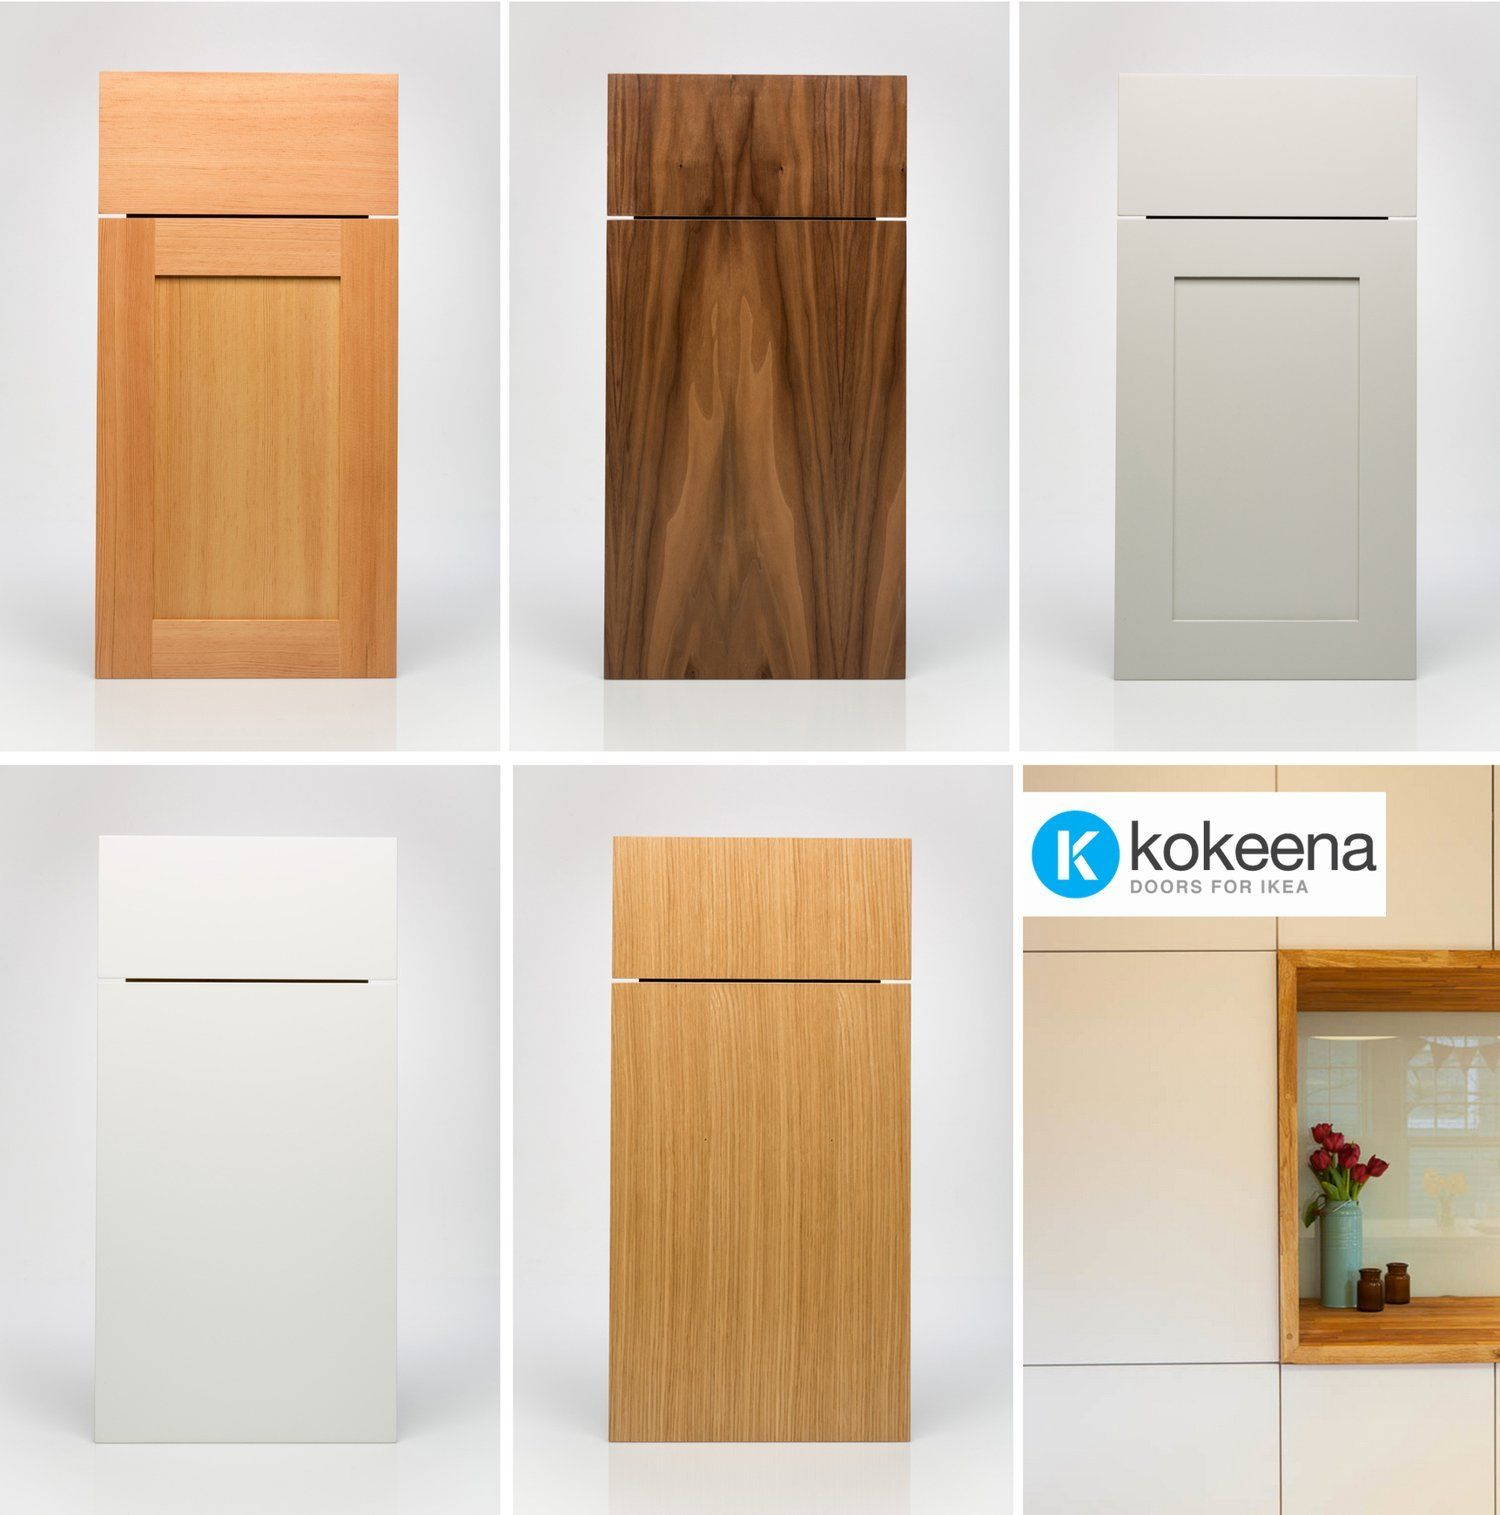 Kokeena real wood ready made cabinet doors for ikea for Ready made kitchen units